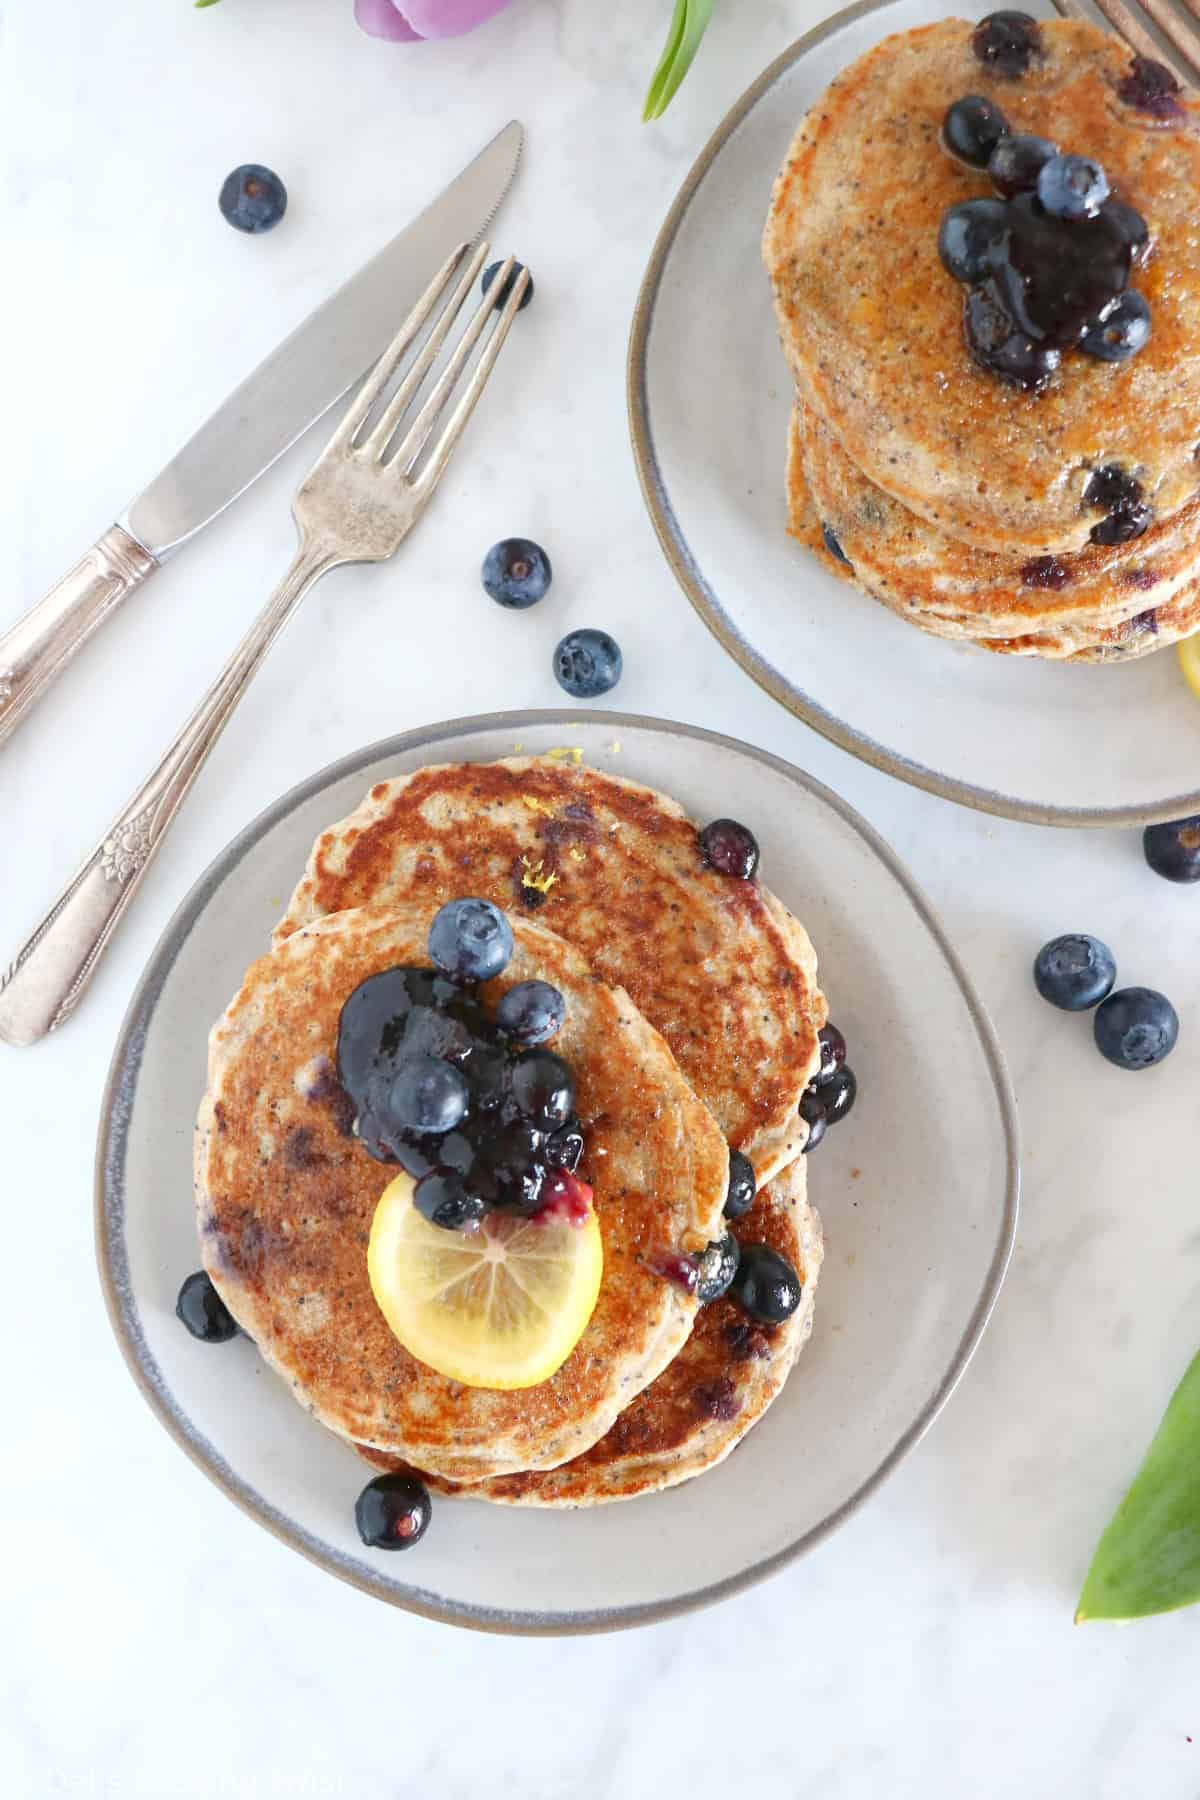 These lemon poppy seed blueberry pancakes are sugar-free, packed with fruits and prepared with whole-wheat flour.